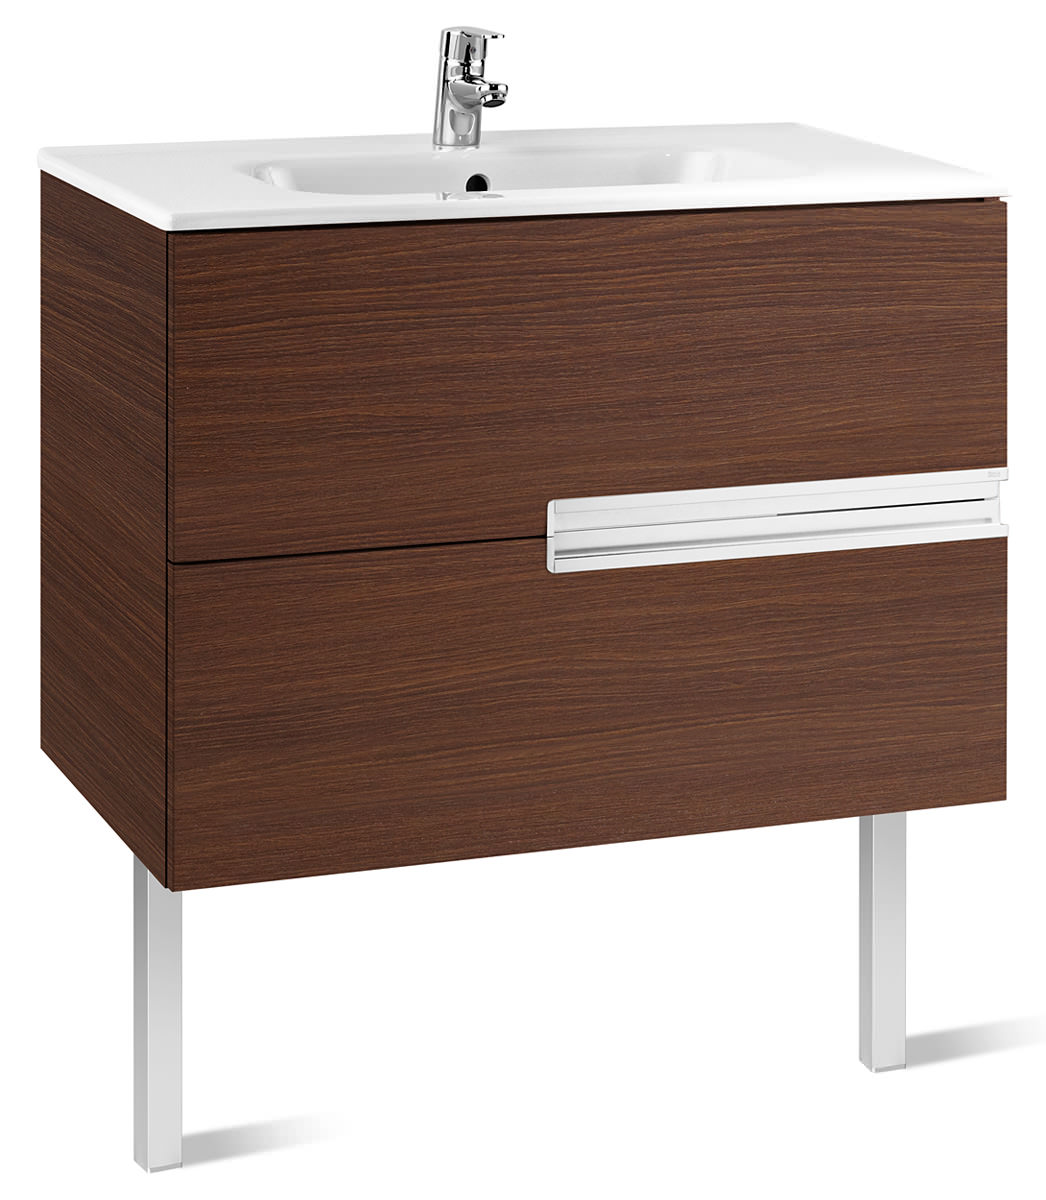 Roca victoria n unik basin and unit with 2 drawers 1000mm for Mueble unik victoria